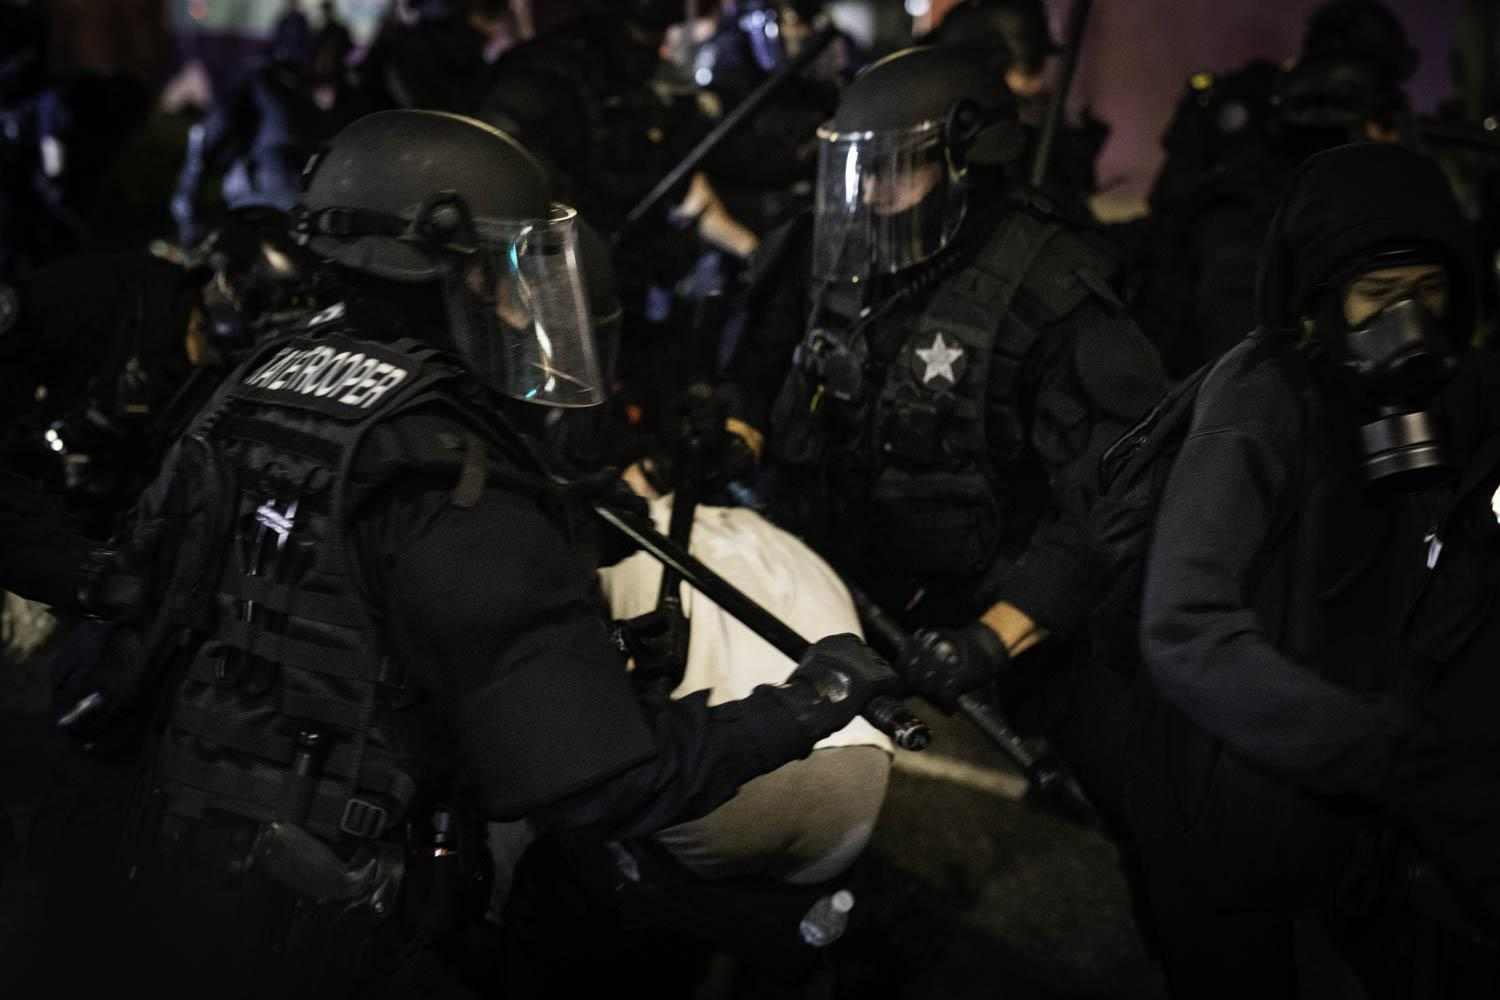 Oregon State Troopers use their clubs on a group of protesters in Portland, Oregon.